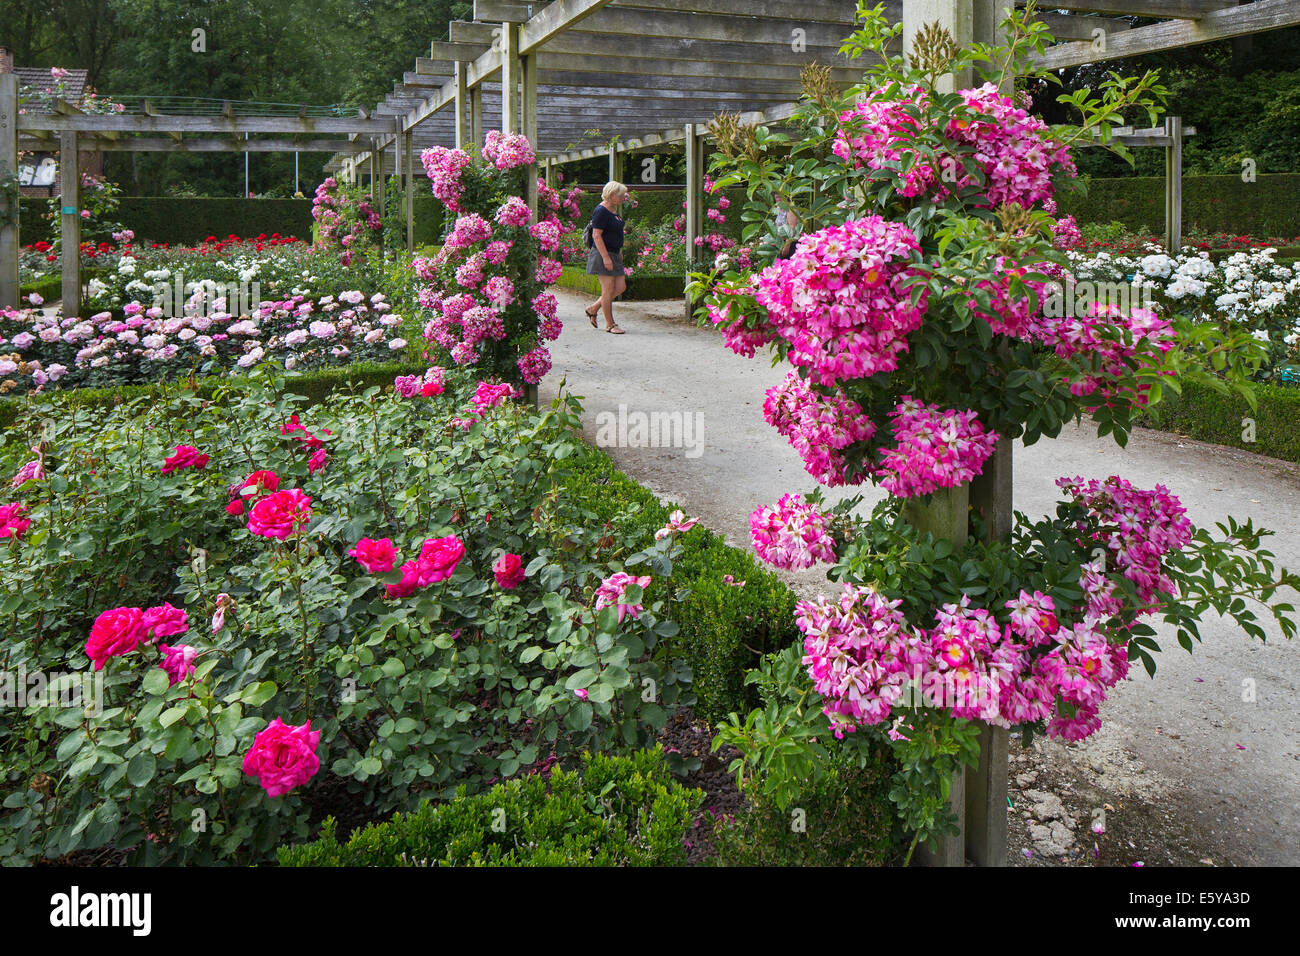 Roses flowering in the Coloma Rose Garden at Sint-Pieters-Leeuw, Flemish Brabant, Flanders, Belgium - Stock Image